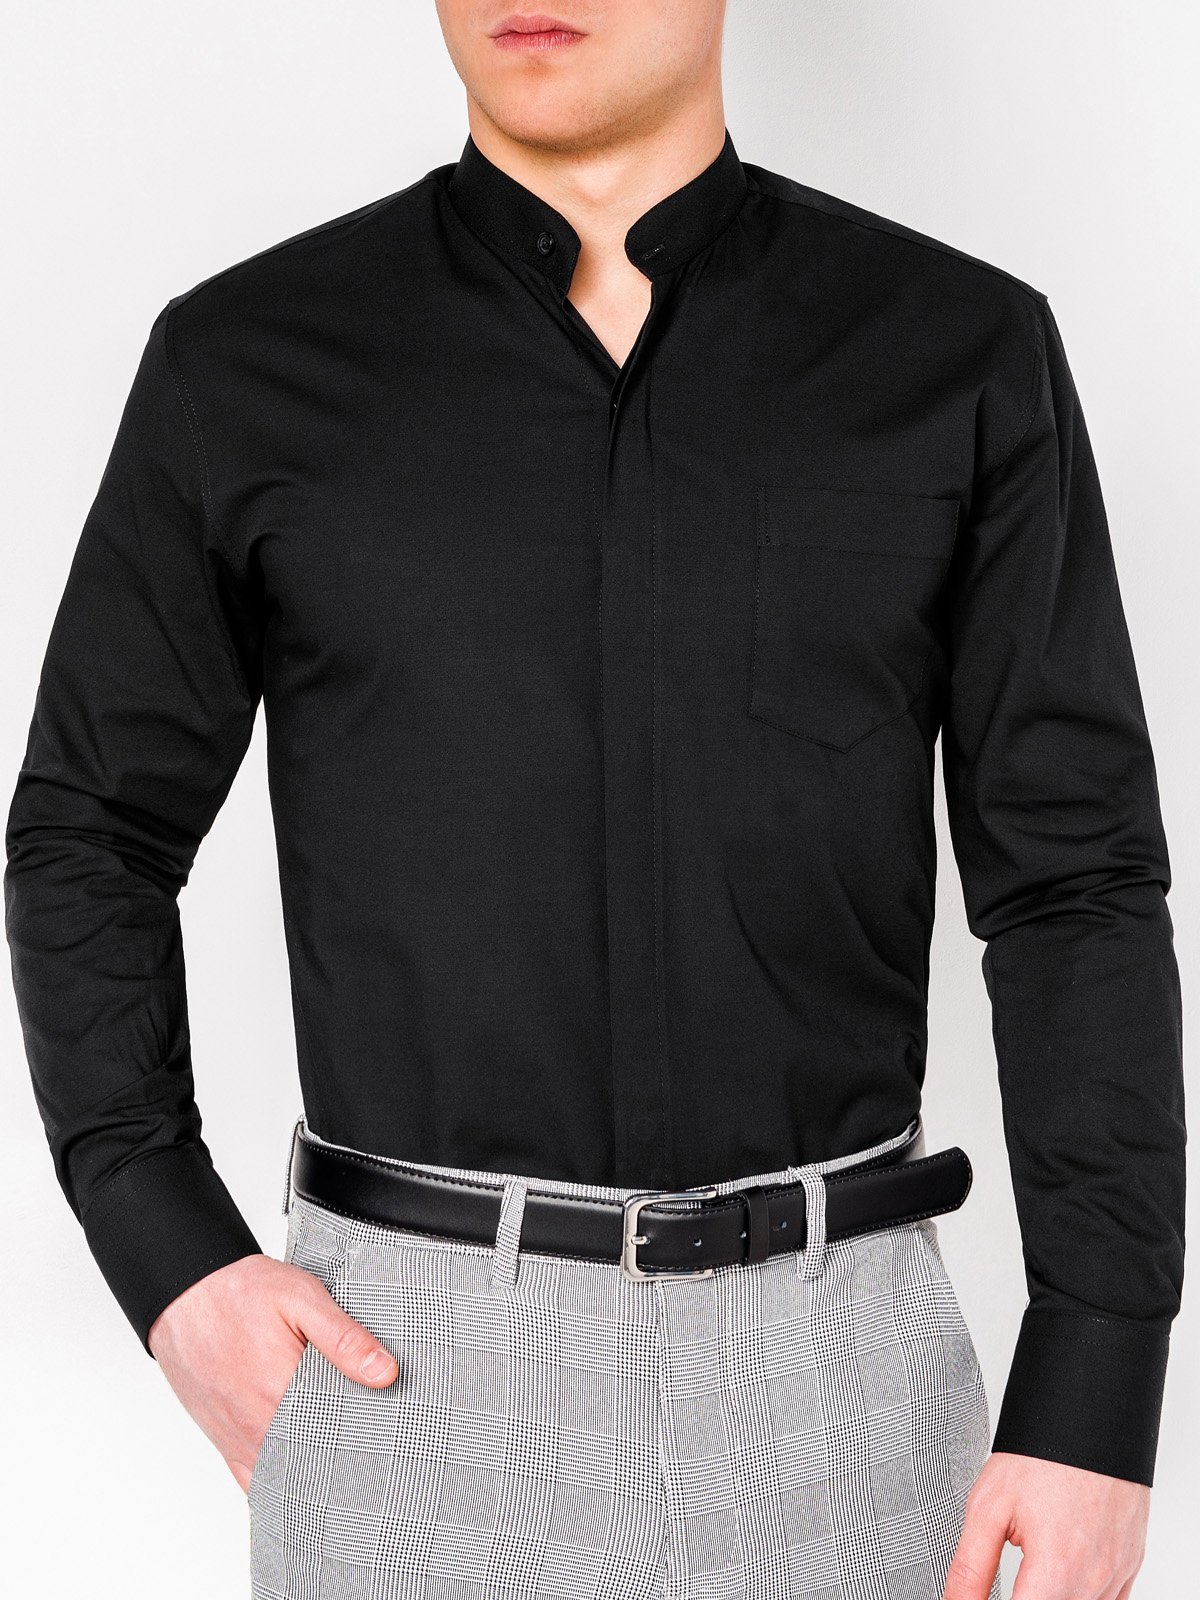 Ombre Clothing MEN'S ELEGANT SHIRT WITH LONG SLEEVES K307